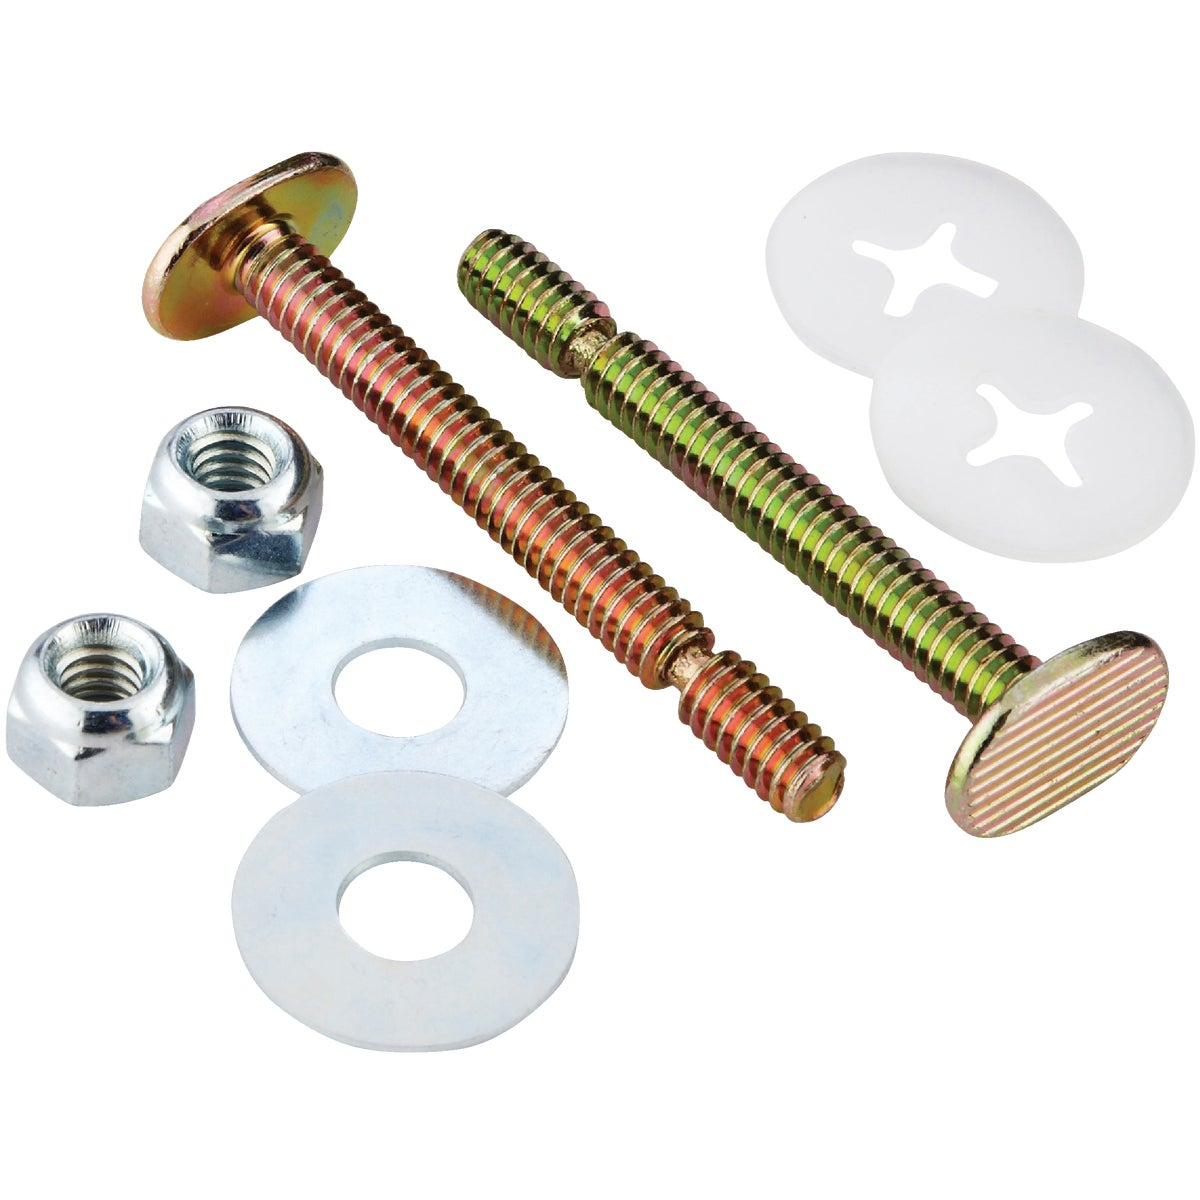 "1/4"" TOILET BOLT SET - 051735 by Do it Best"